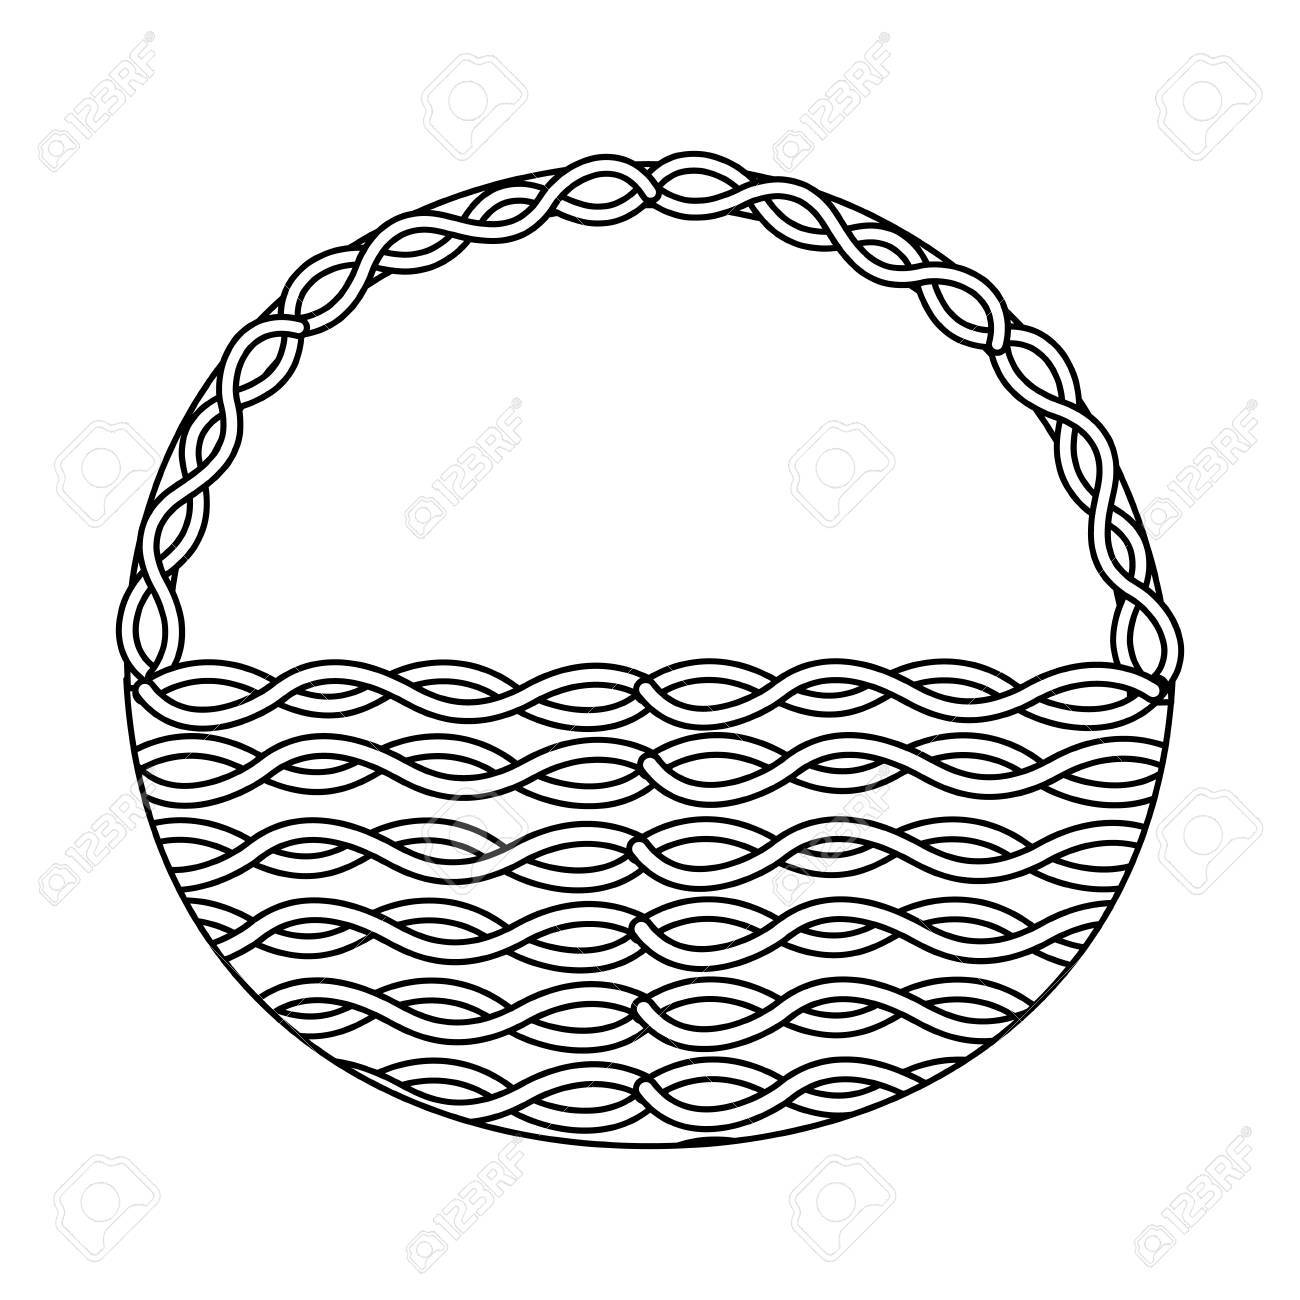 Basket without handles clipart black and white free stock Wicker basket handle round empty decoration » Clipart Portal free stock